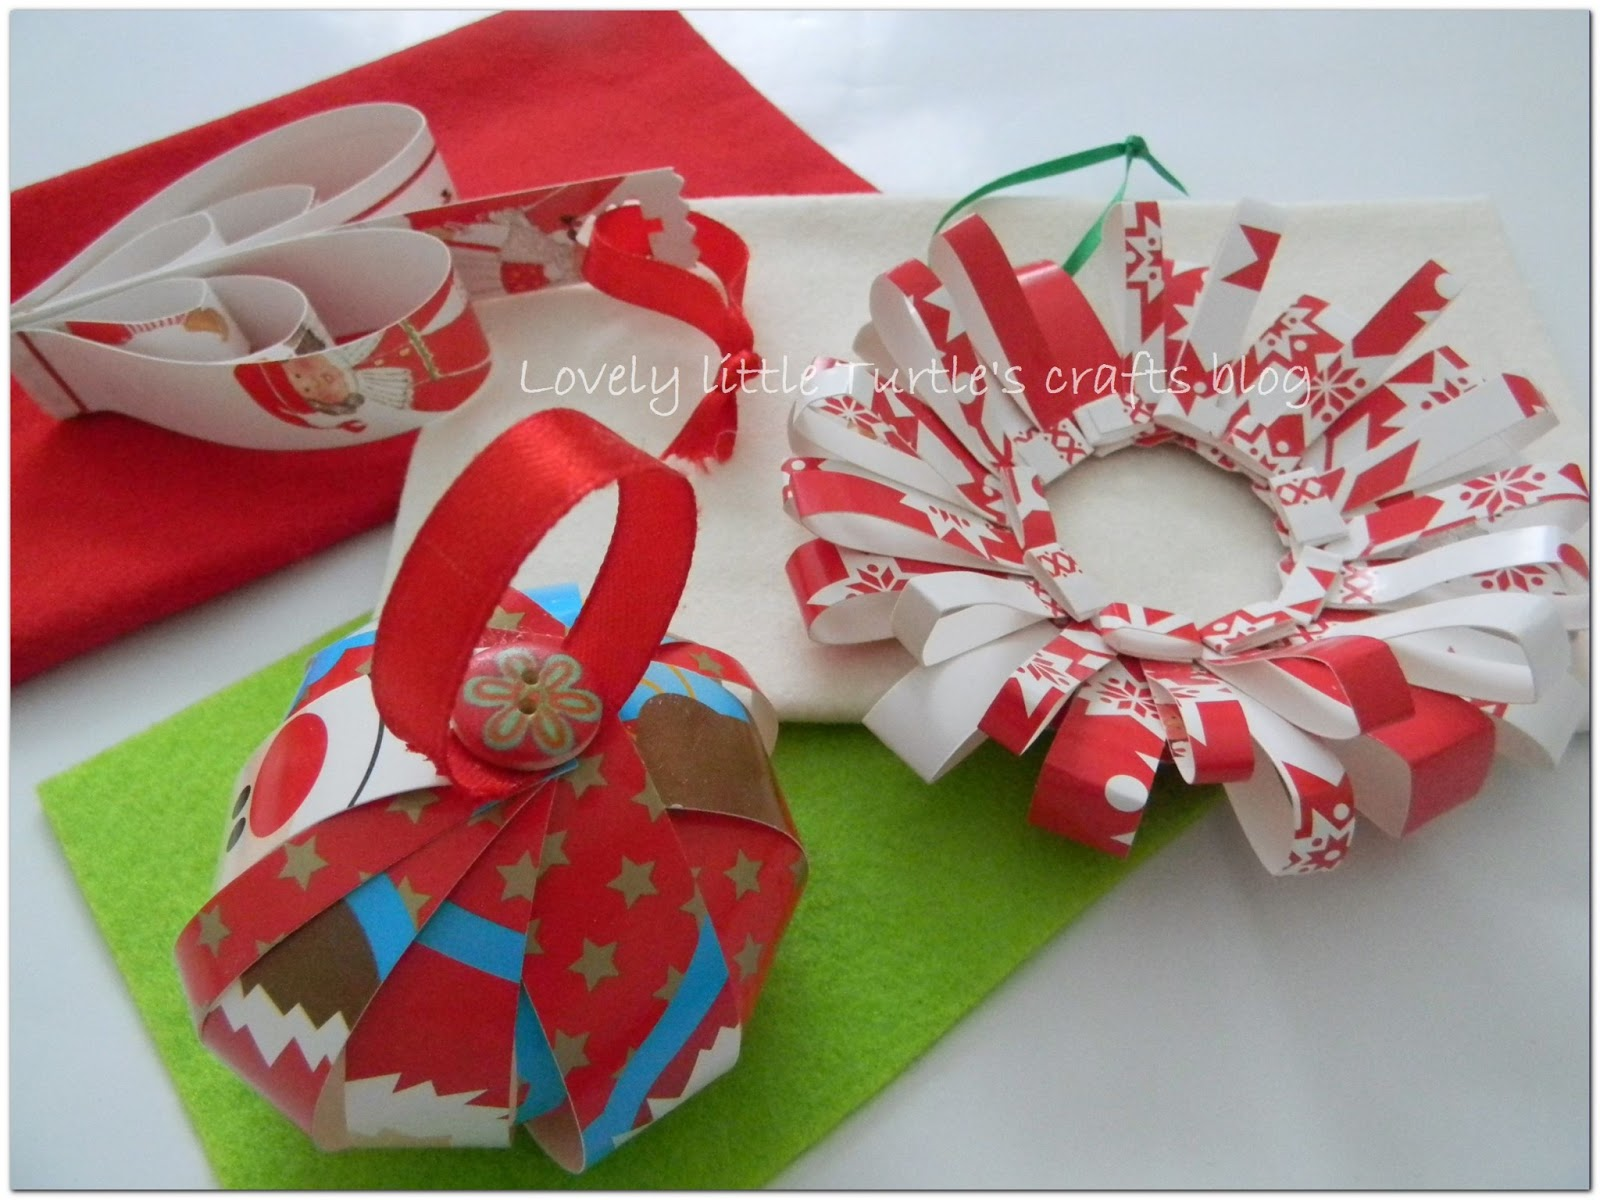 Lovely little turtle\'s crafts blog: Recycle your old Christmas cards